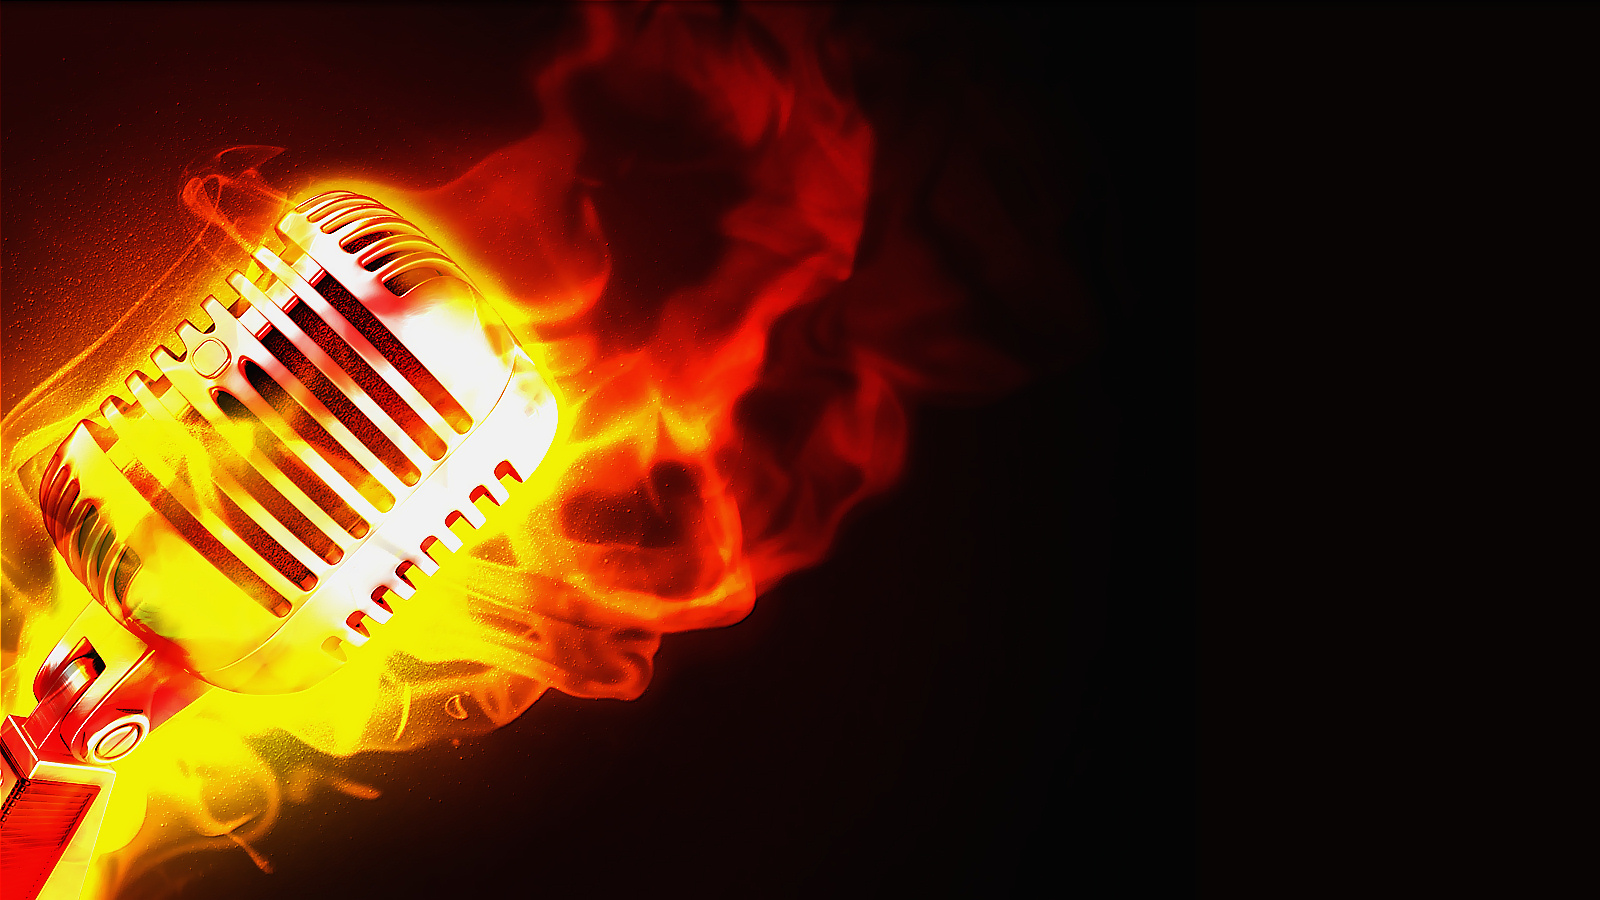 Music And Fire 2 Twitter Backgrounds Music And Fire 2 Twitter Themes 1600x900